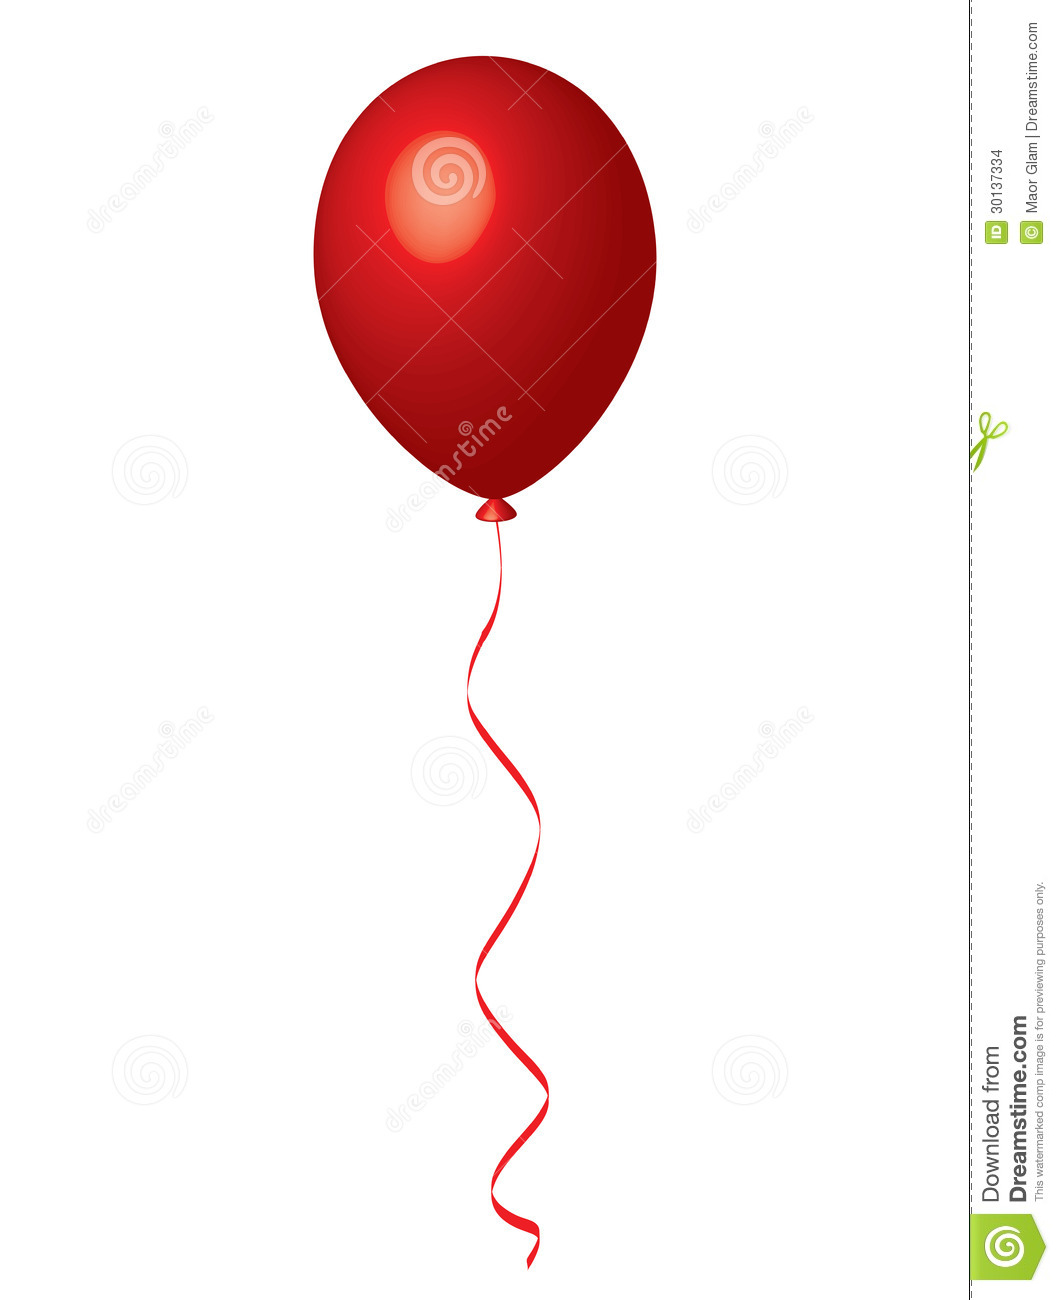 Red Balloon Clipart   Clipart Panda   Free Clipart Images